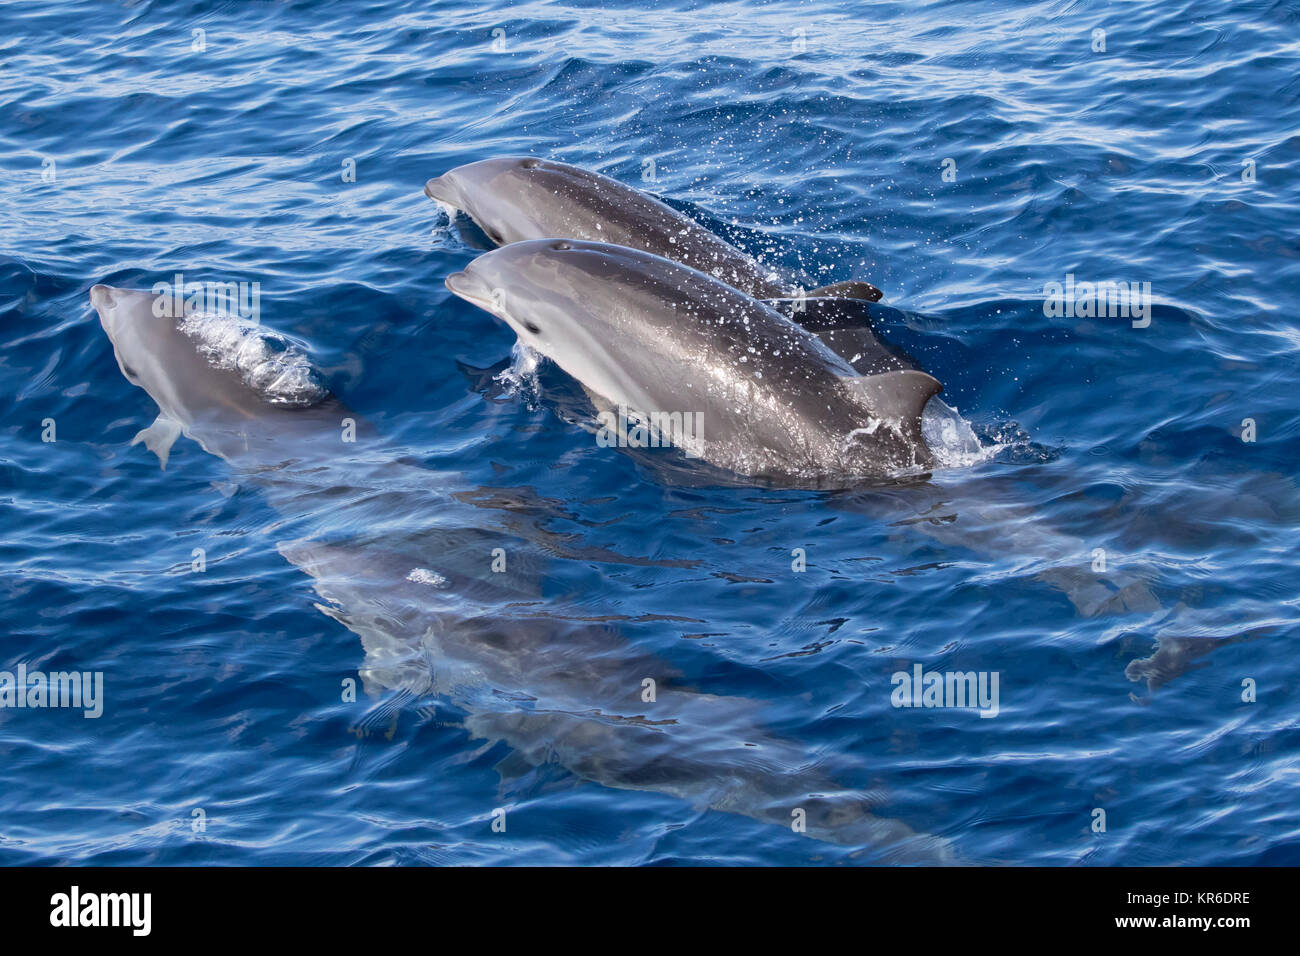 Fraser's dolphin (Lagenodelphis hosei) or the Sarawak dolphin getting close to the boat in large group Stock Photo